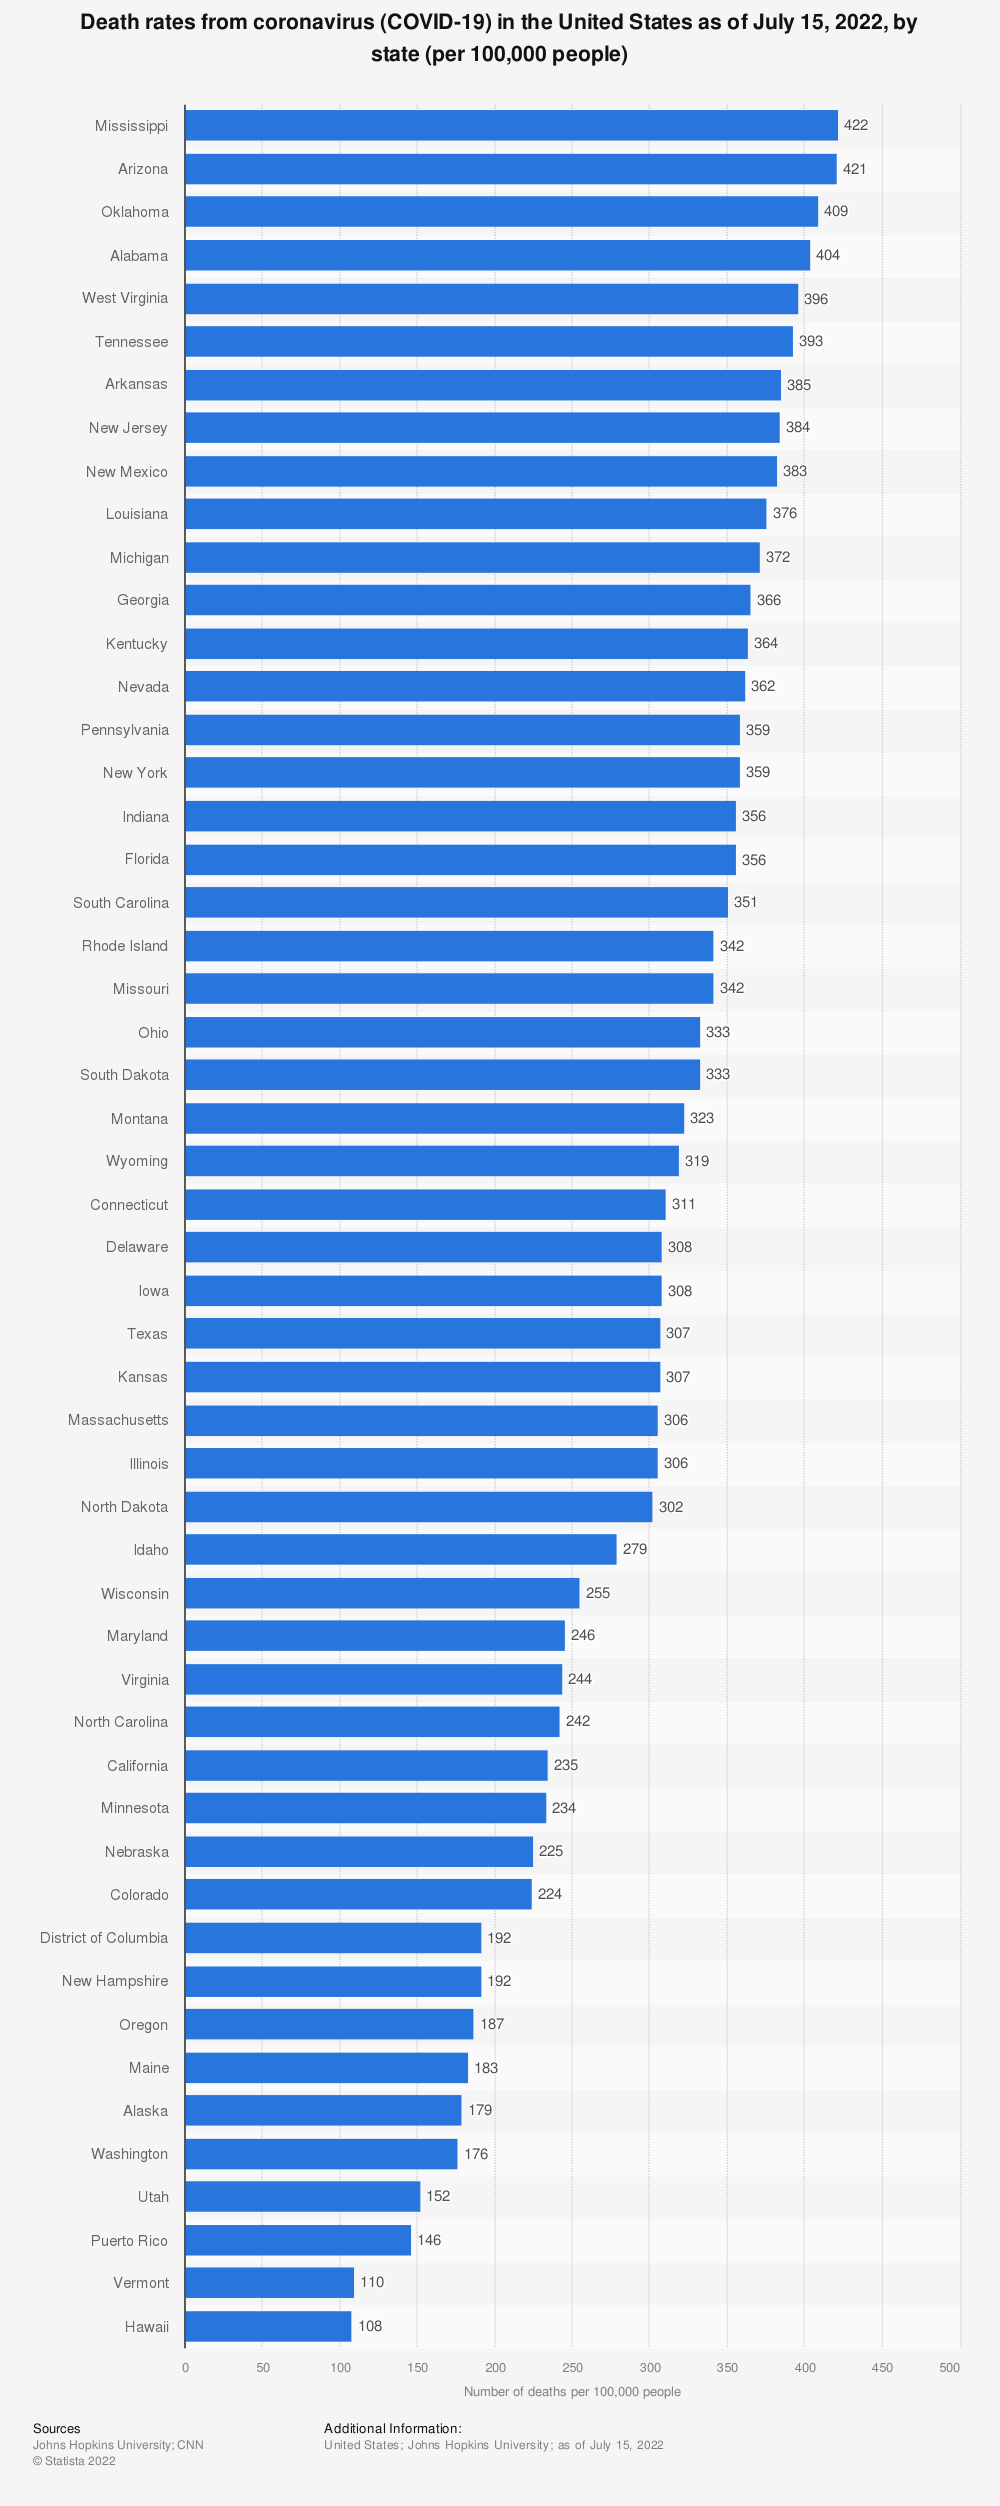 Statistic: Death rates from coronavirus (COVID-19) in the United States as of February 17, 2021, by state (per 100,000 people) | Statista